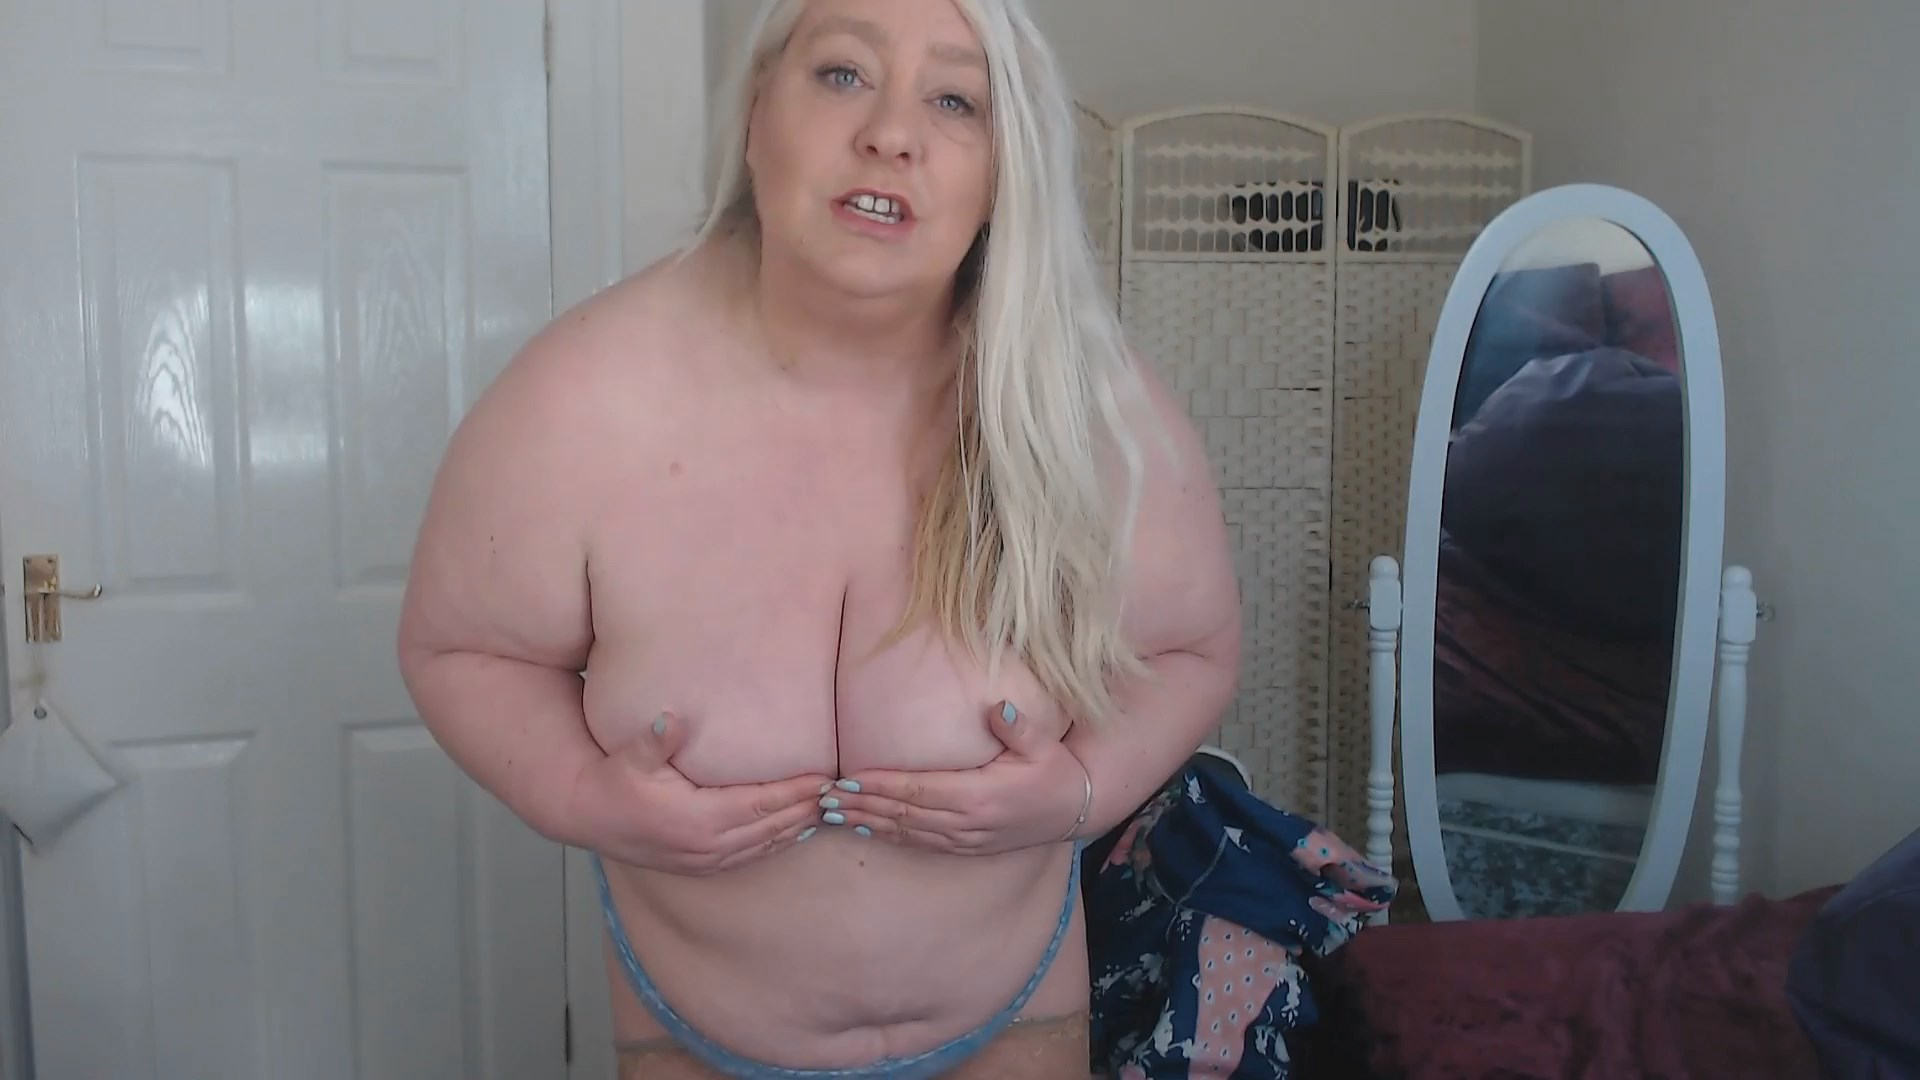 English Milf - Son wants to take photos of Mommy